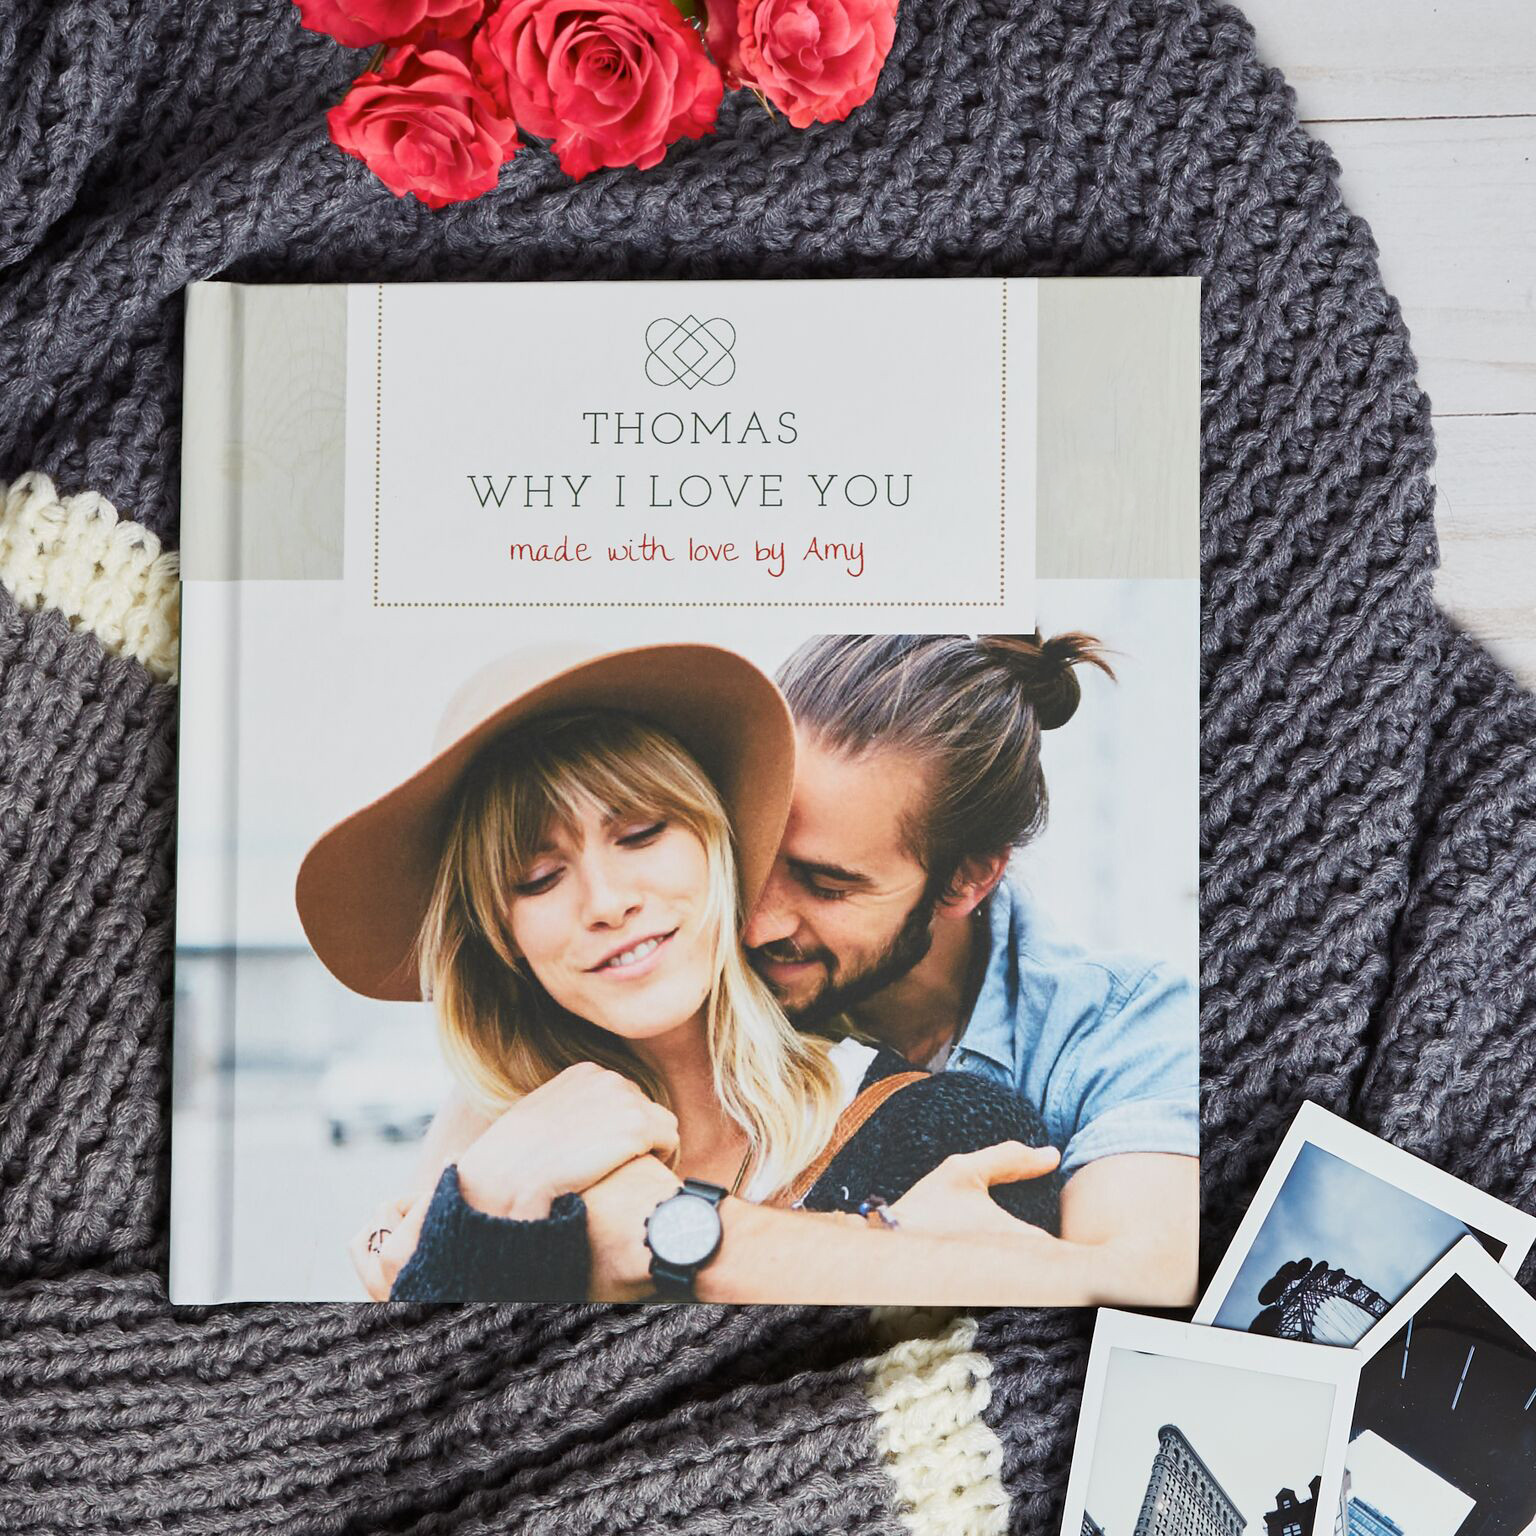 The Story Of Us - Why I Love You Book